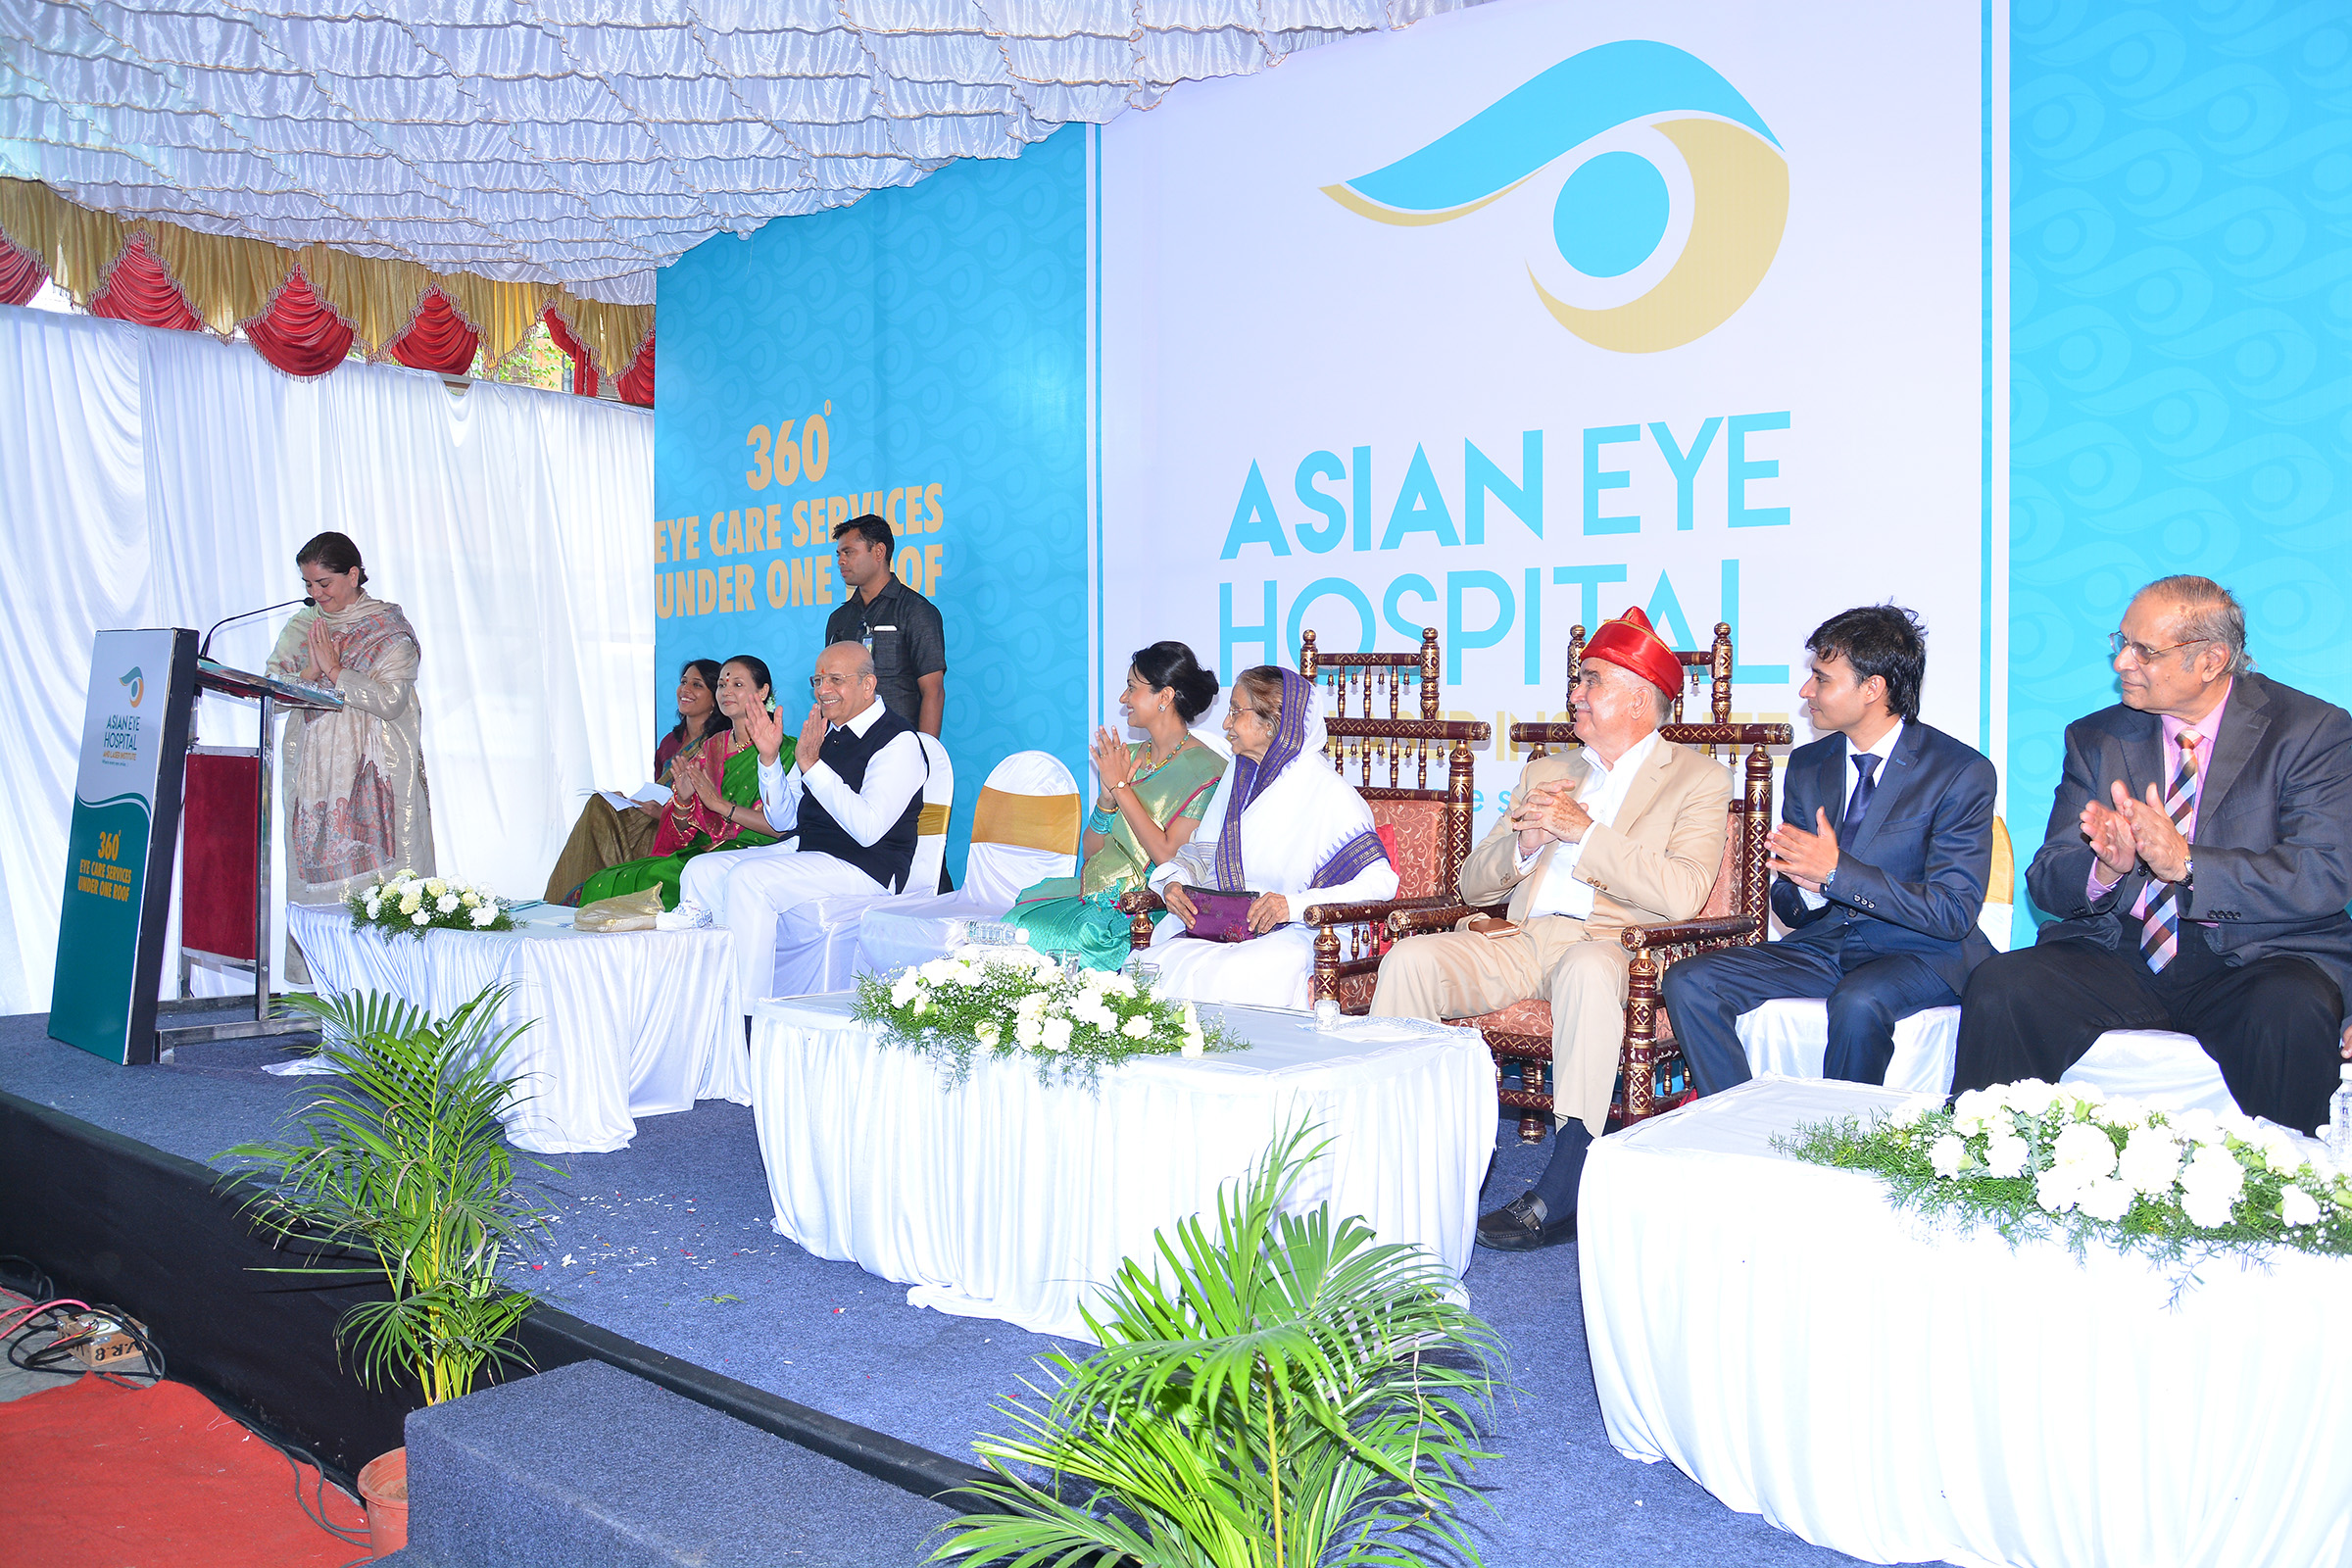 Inauguration of retina clinic in pune